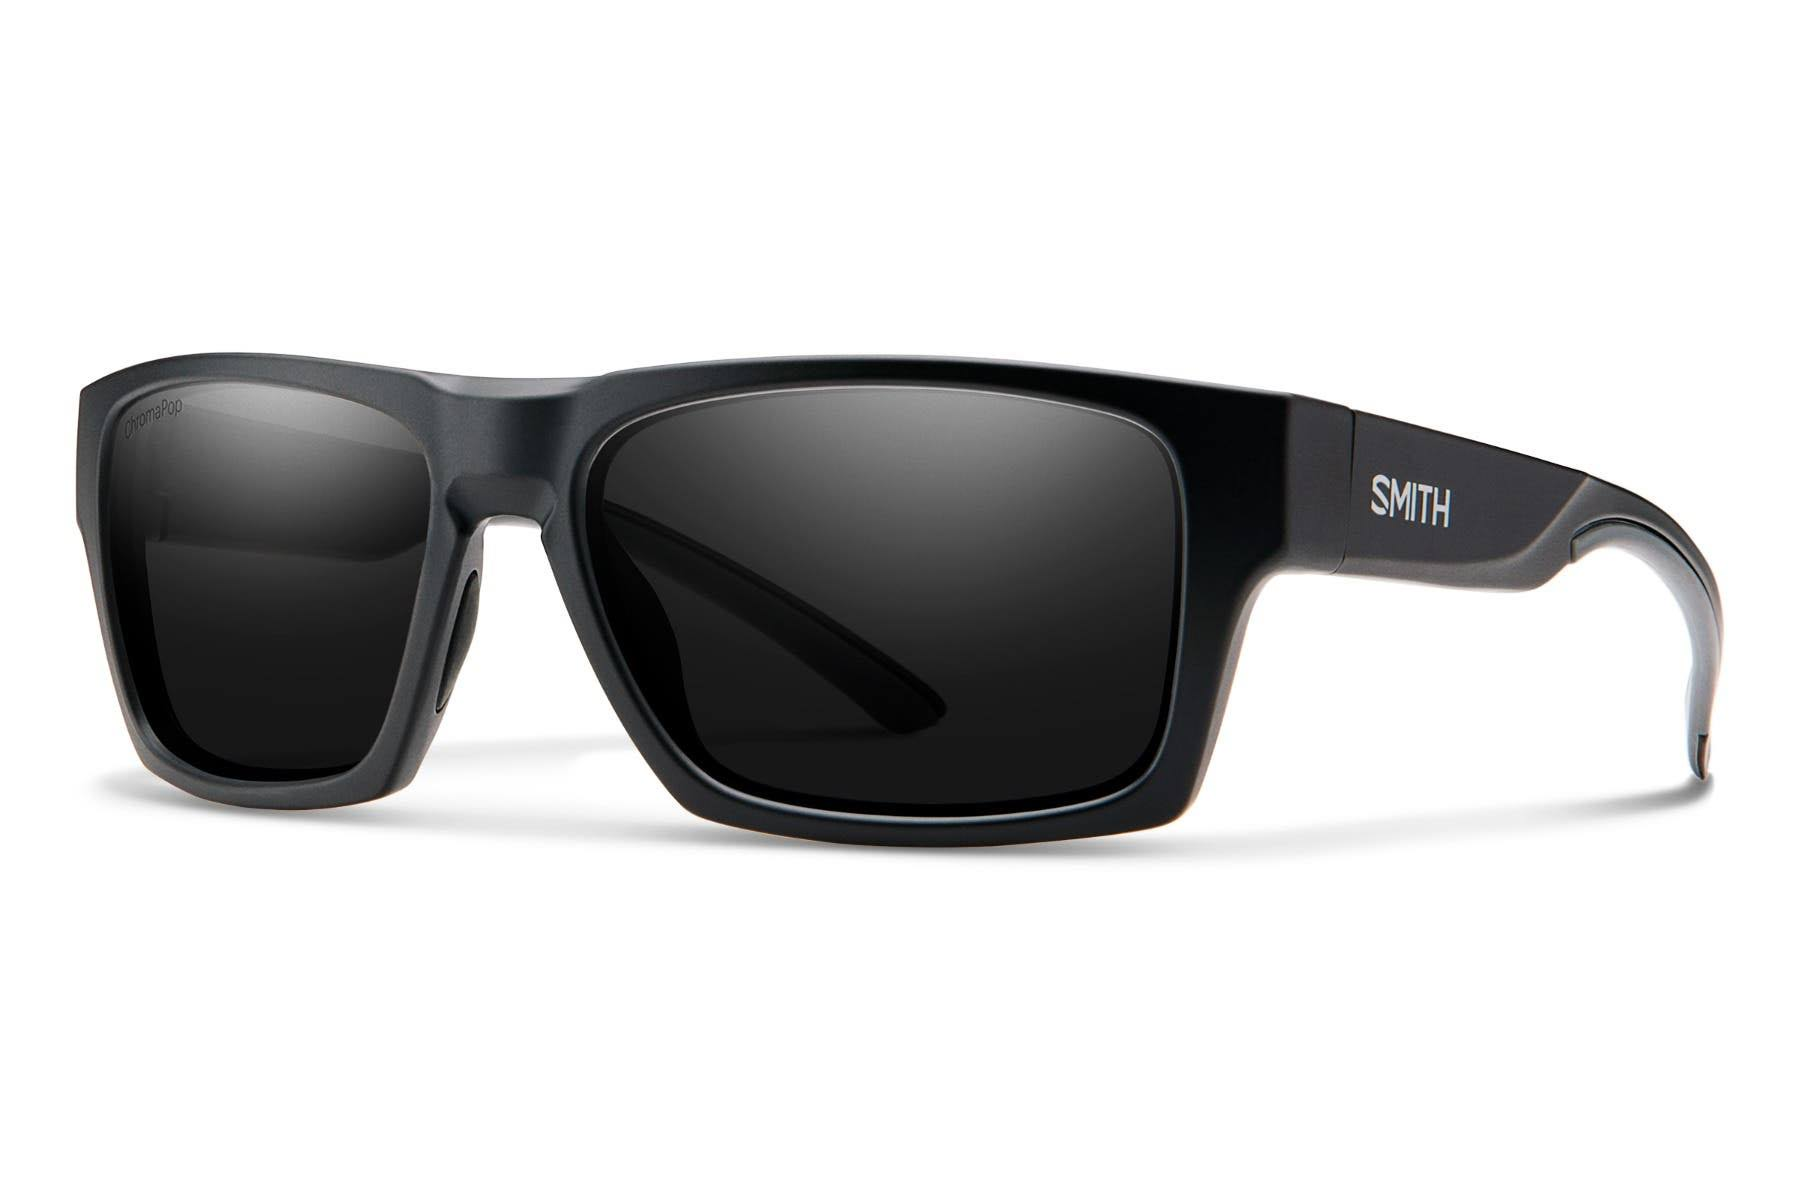 Smith Outlier 2 Chromapop Polarized Sunglasses - Matte Black/Polarized Black